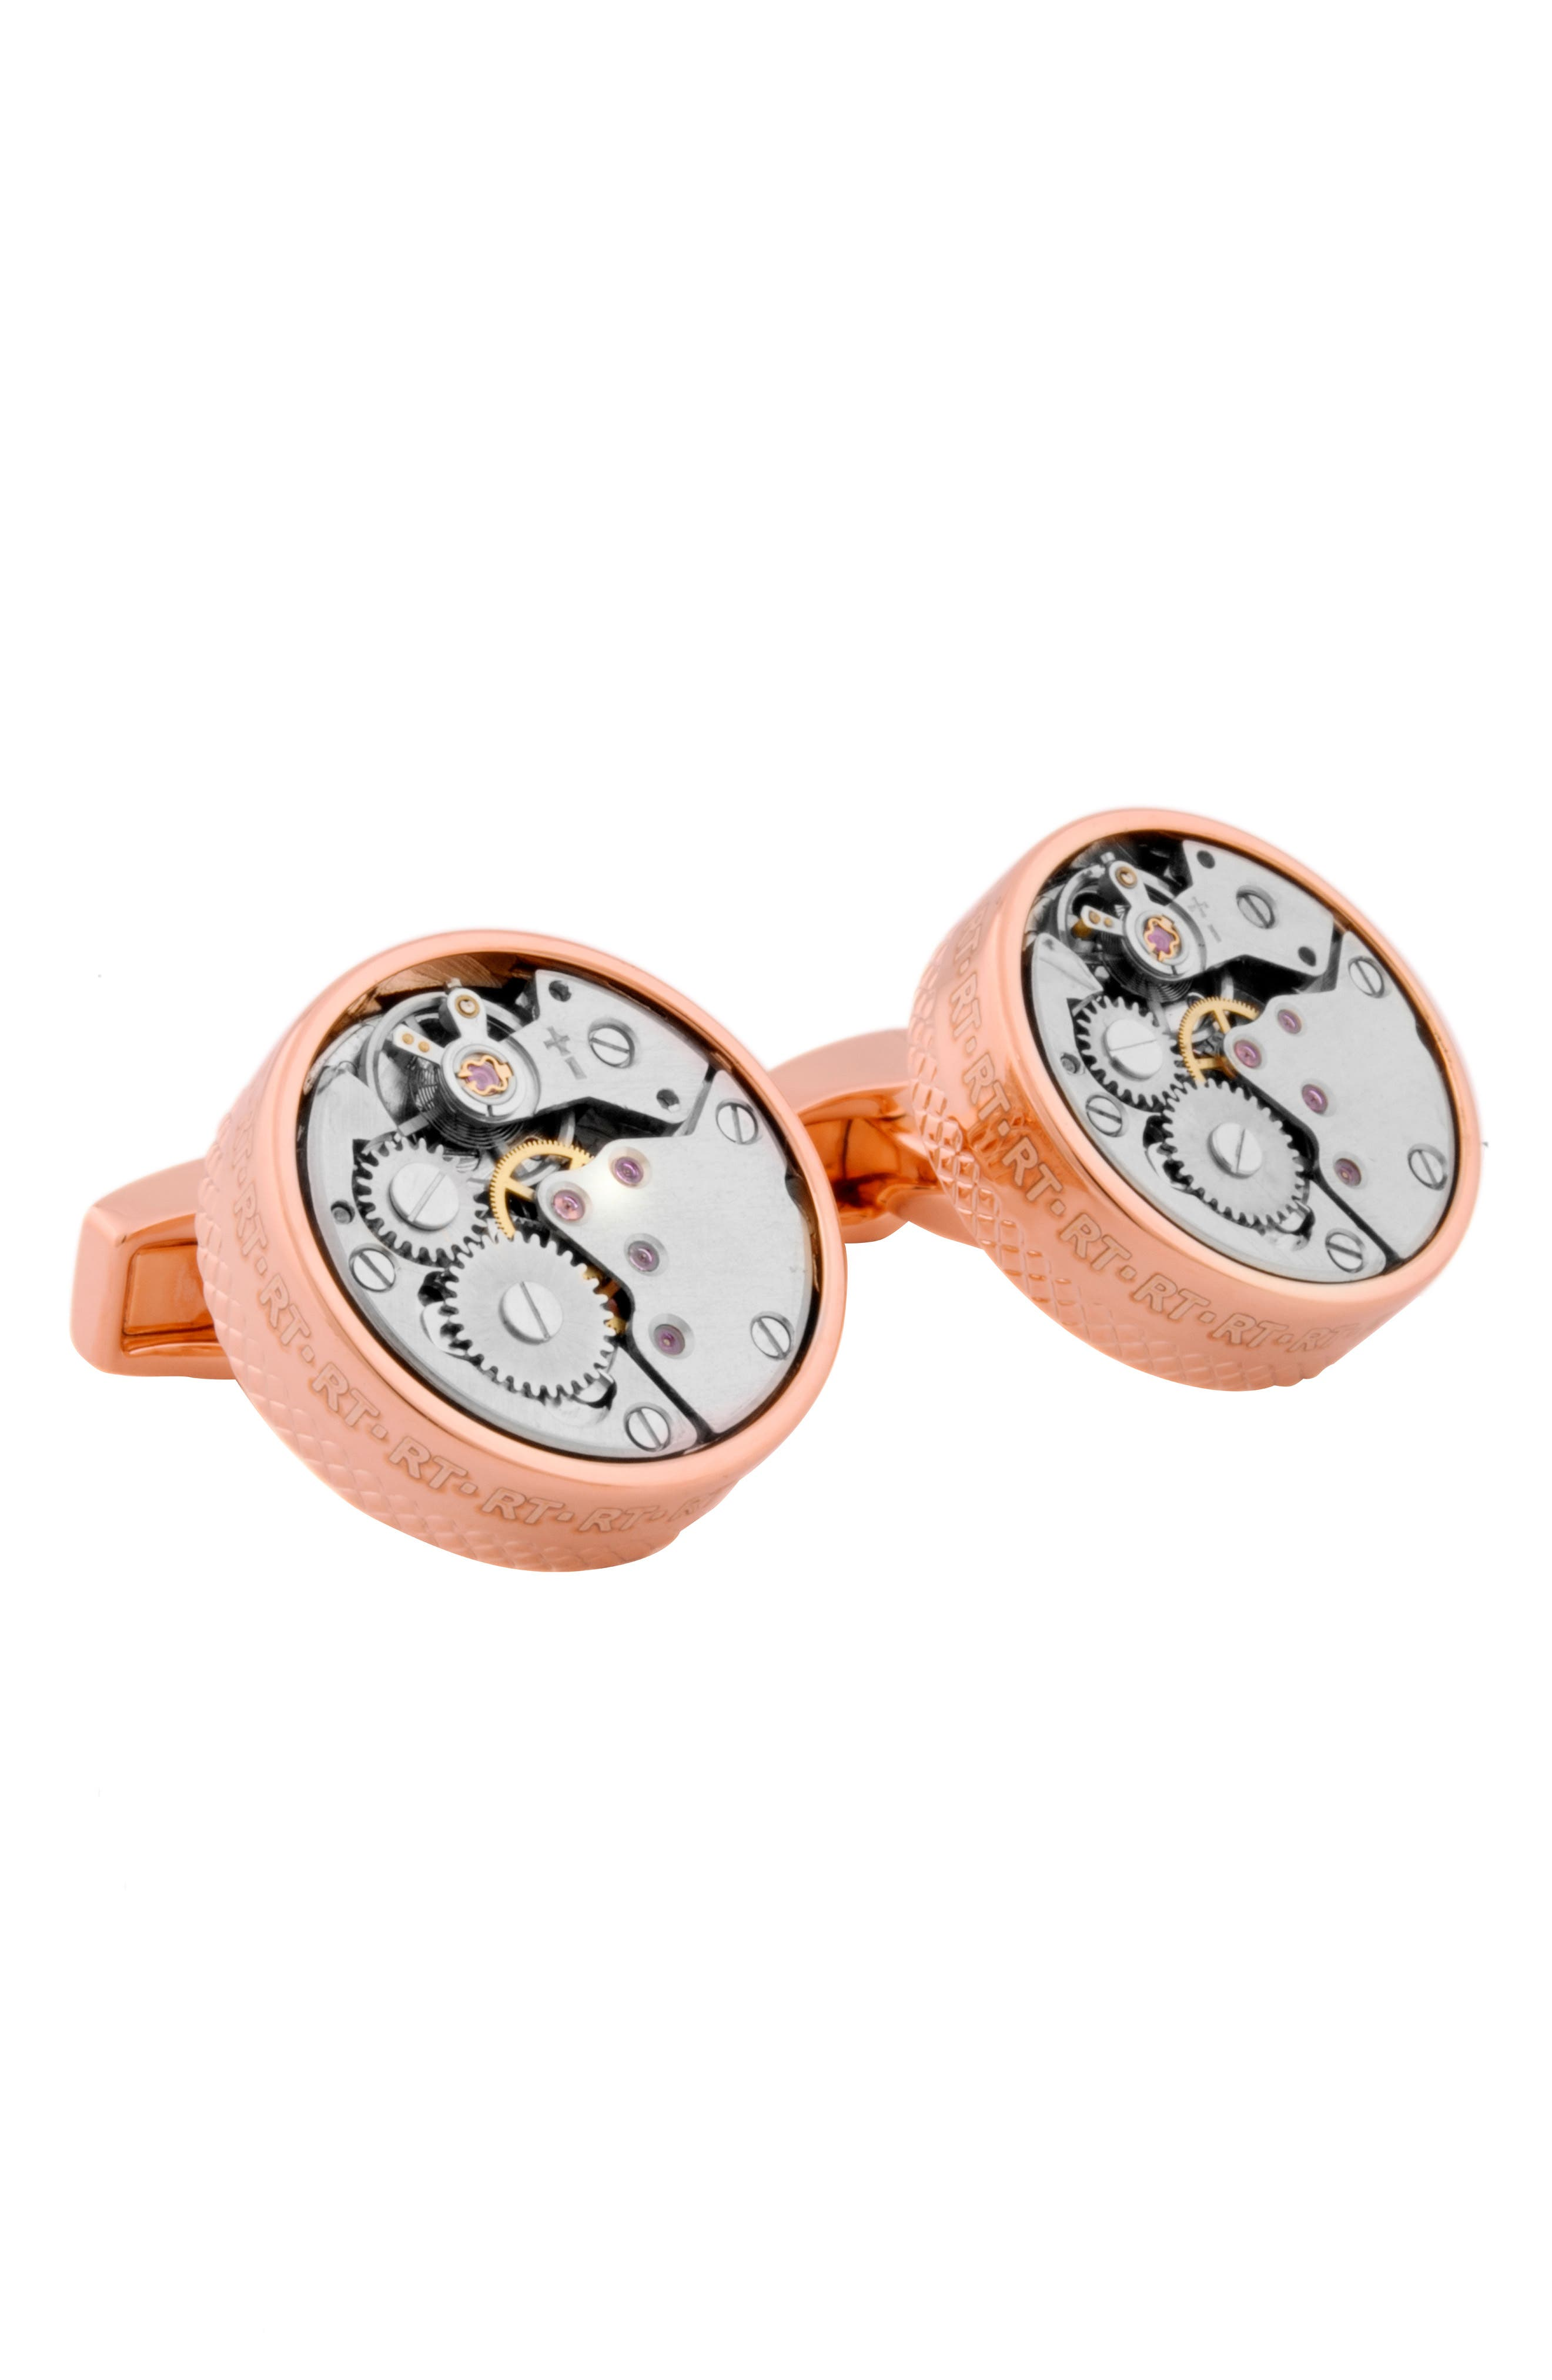 Skeleton Movement Cuff Links,                             Main thumbnail 1, color,                             ROSE GOLD